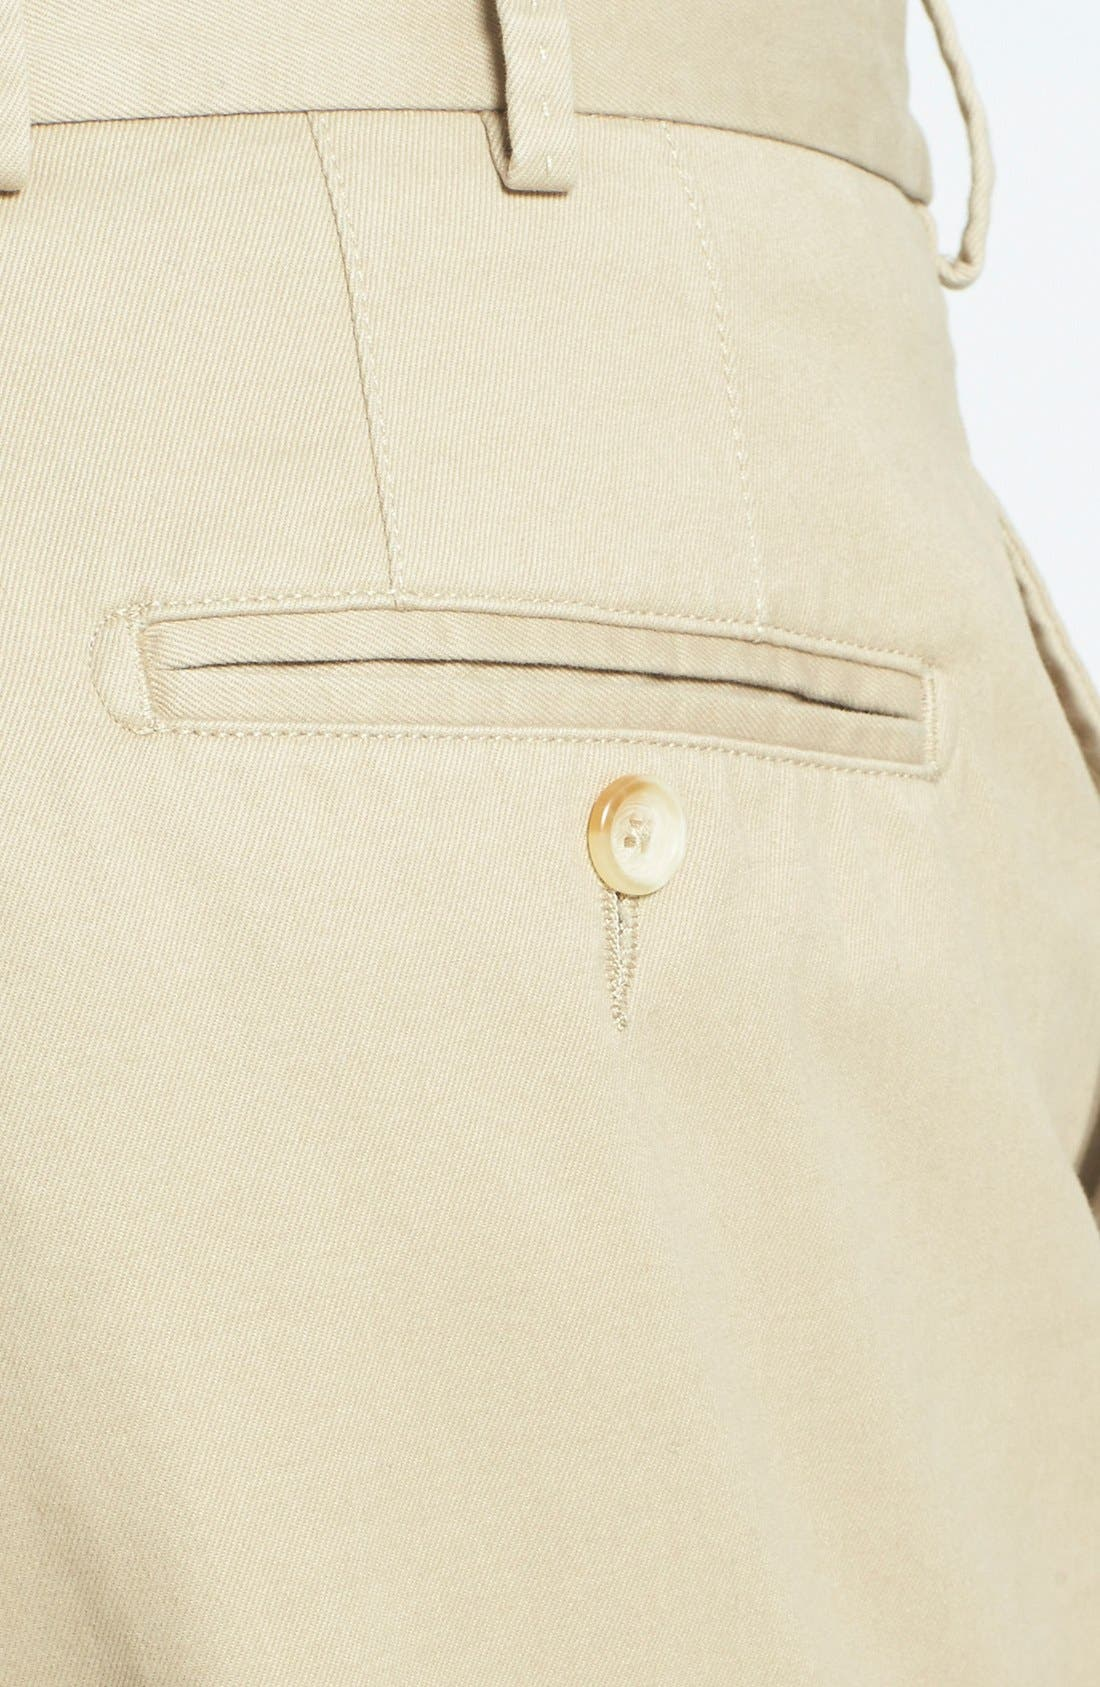 Garment Washed Twill Pants,                             Alternate thumbnail 61, color,